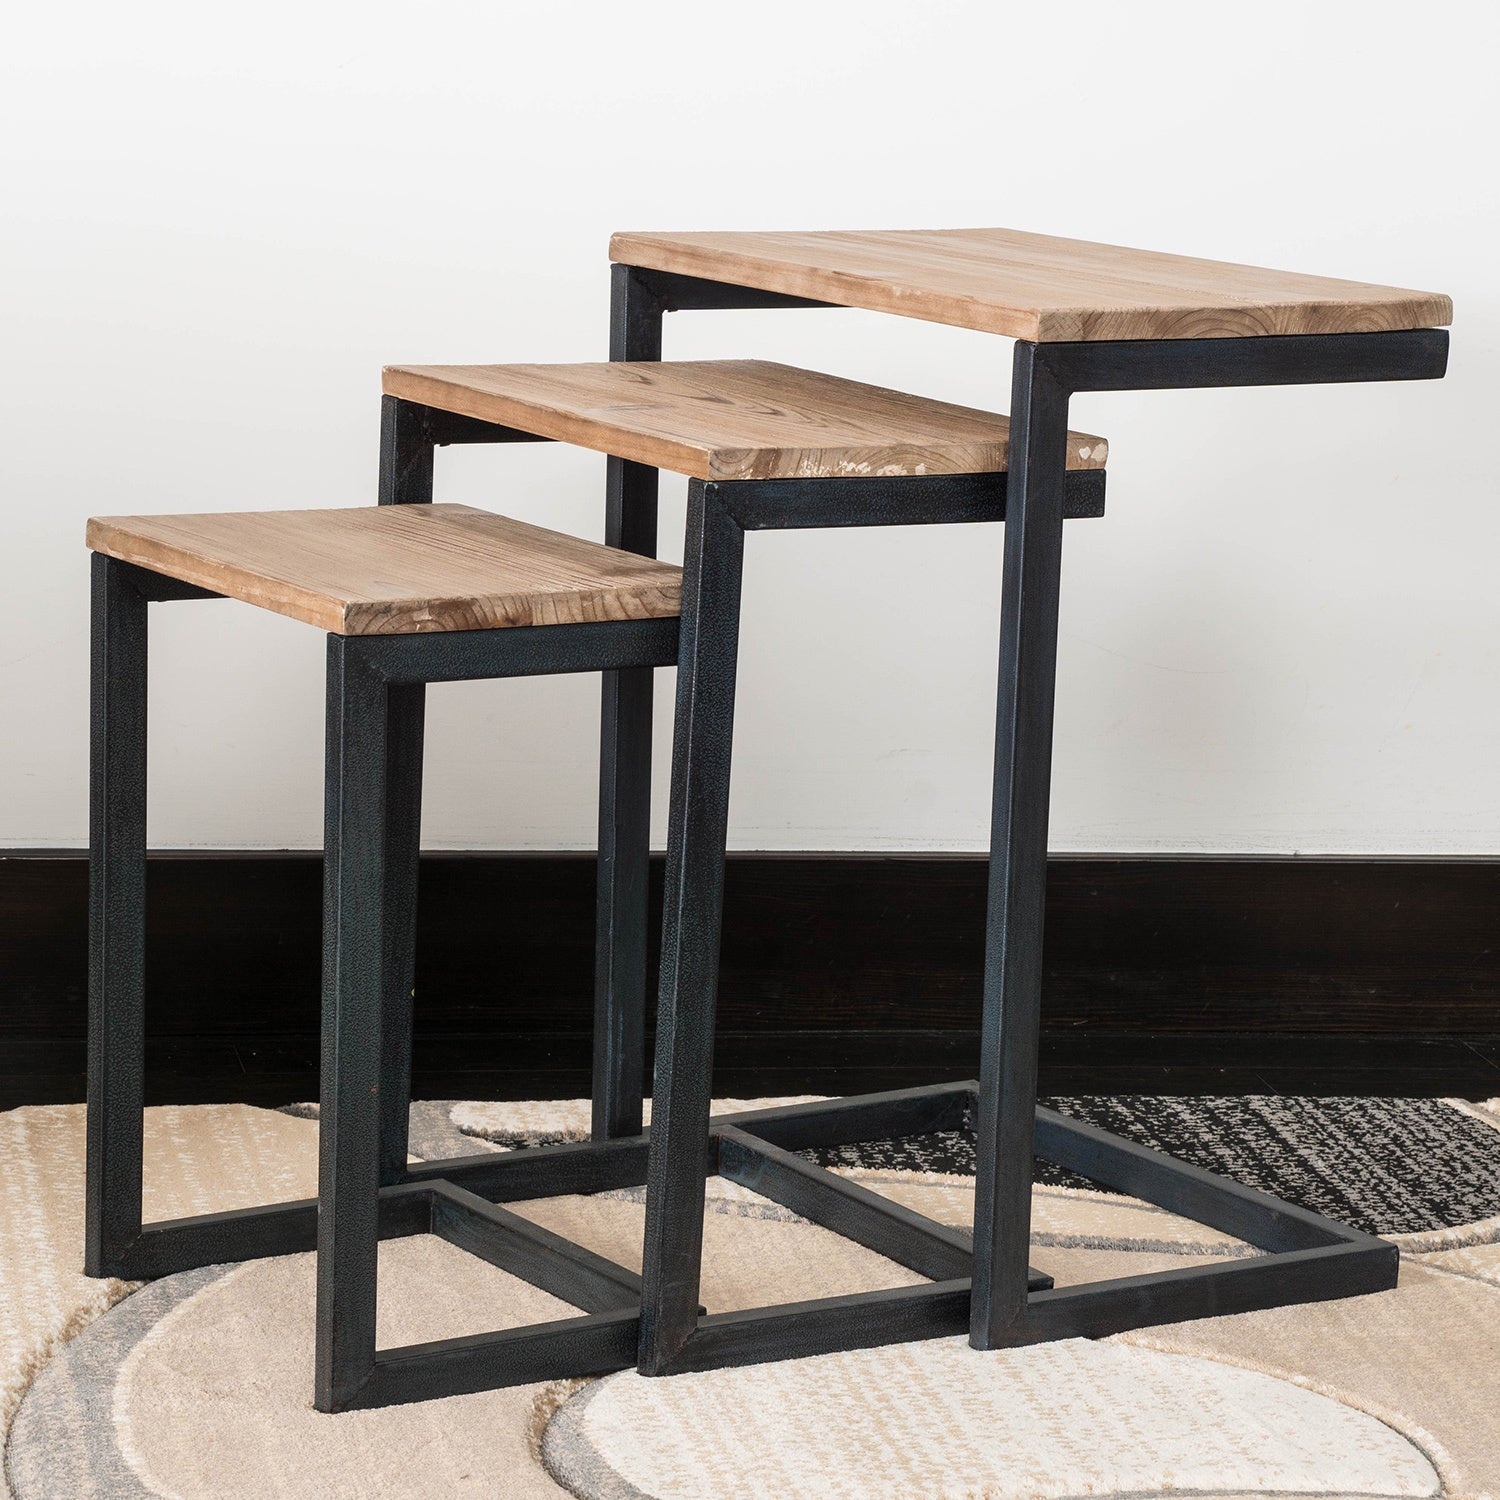 Tohono Firwood 3-piece Nesting Table Set by Christopher Knight Home - Free Shipping Today - Overstock - 18873351 & Tohono Firwood 3-piece Nesting Table Set by Christopher Knight Home ...